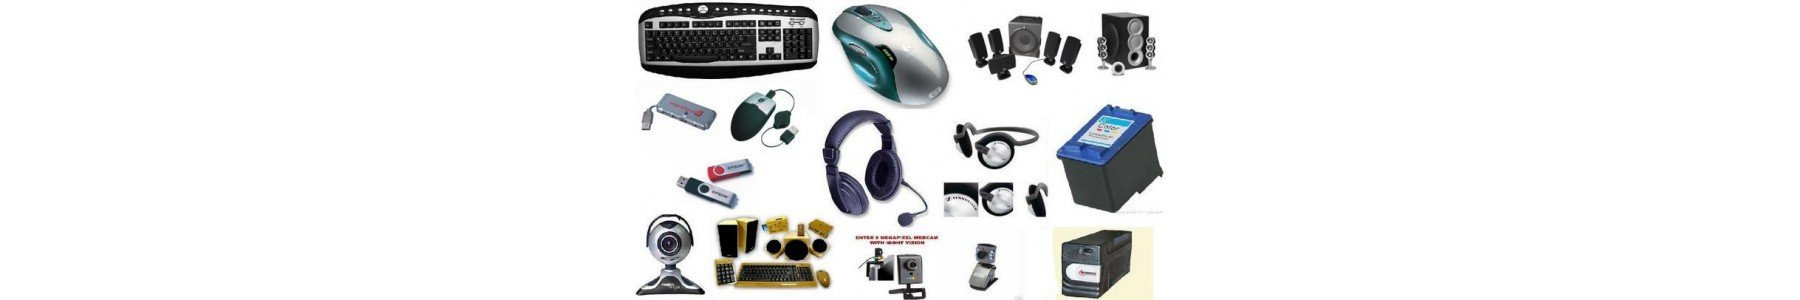 Computer Parts and Accessories South Africa   Buy your PC Parts